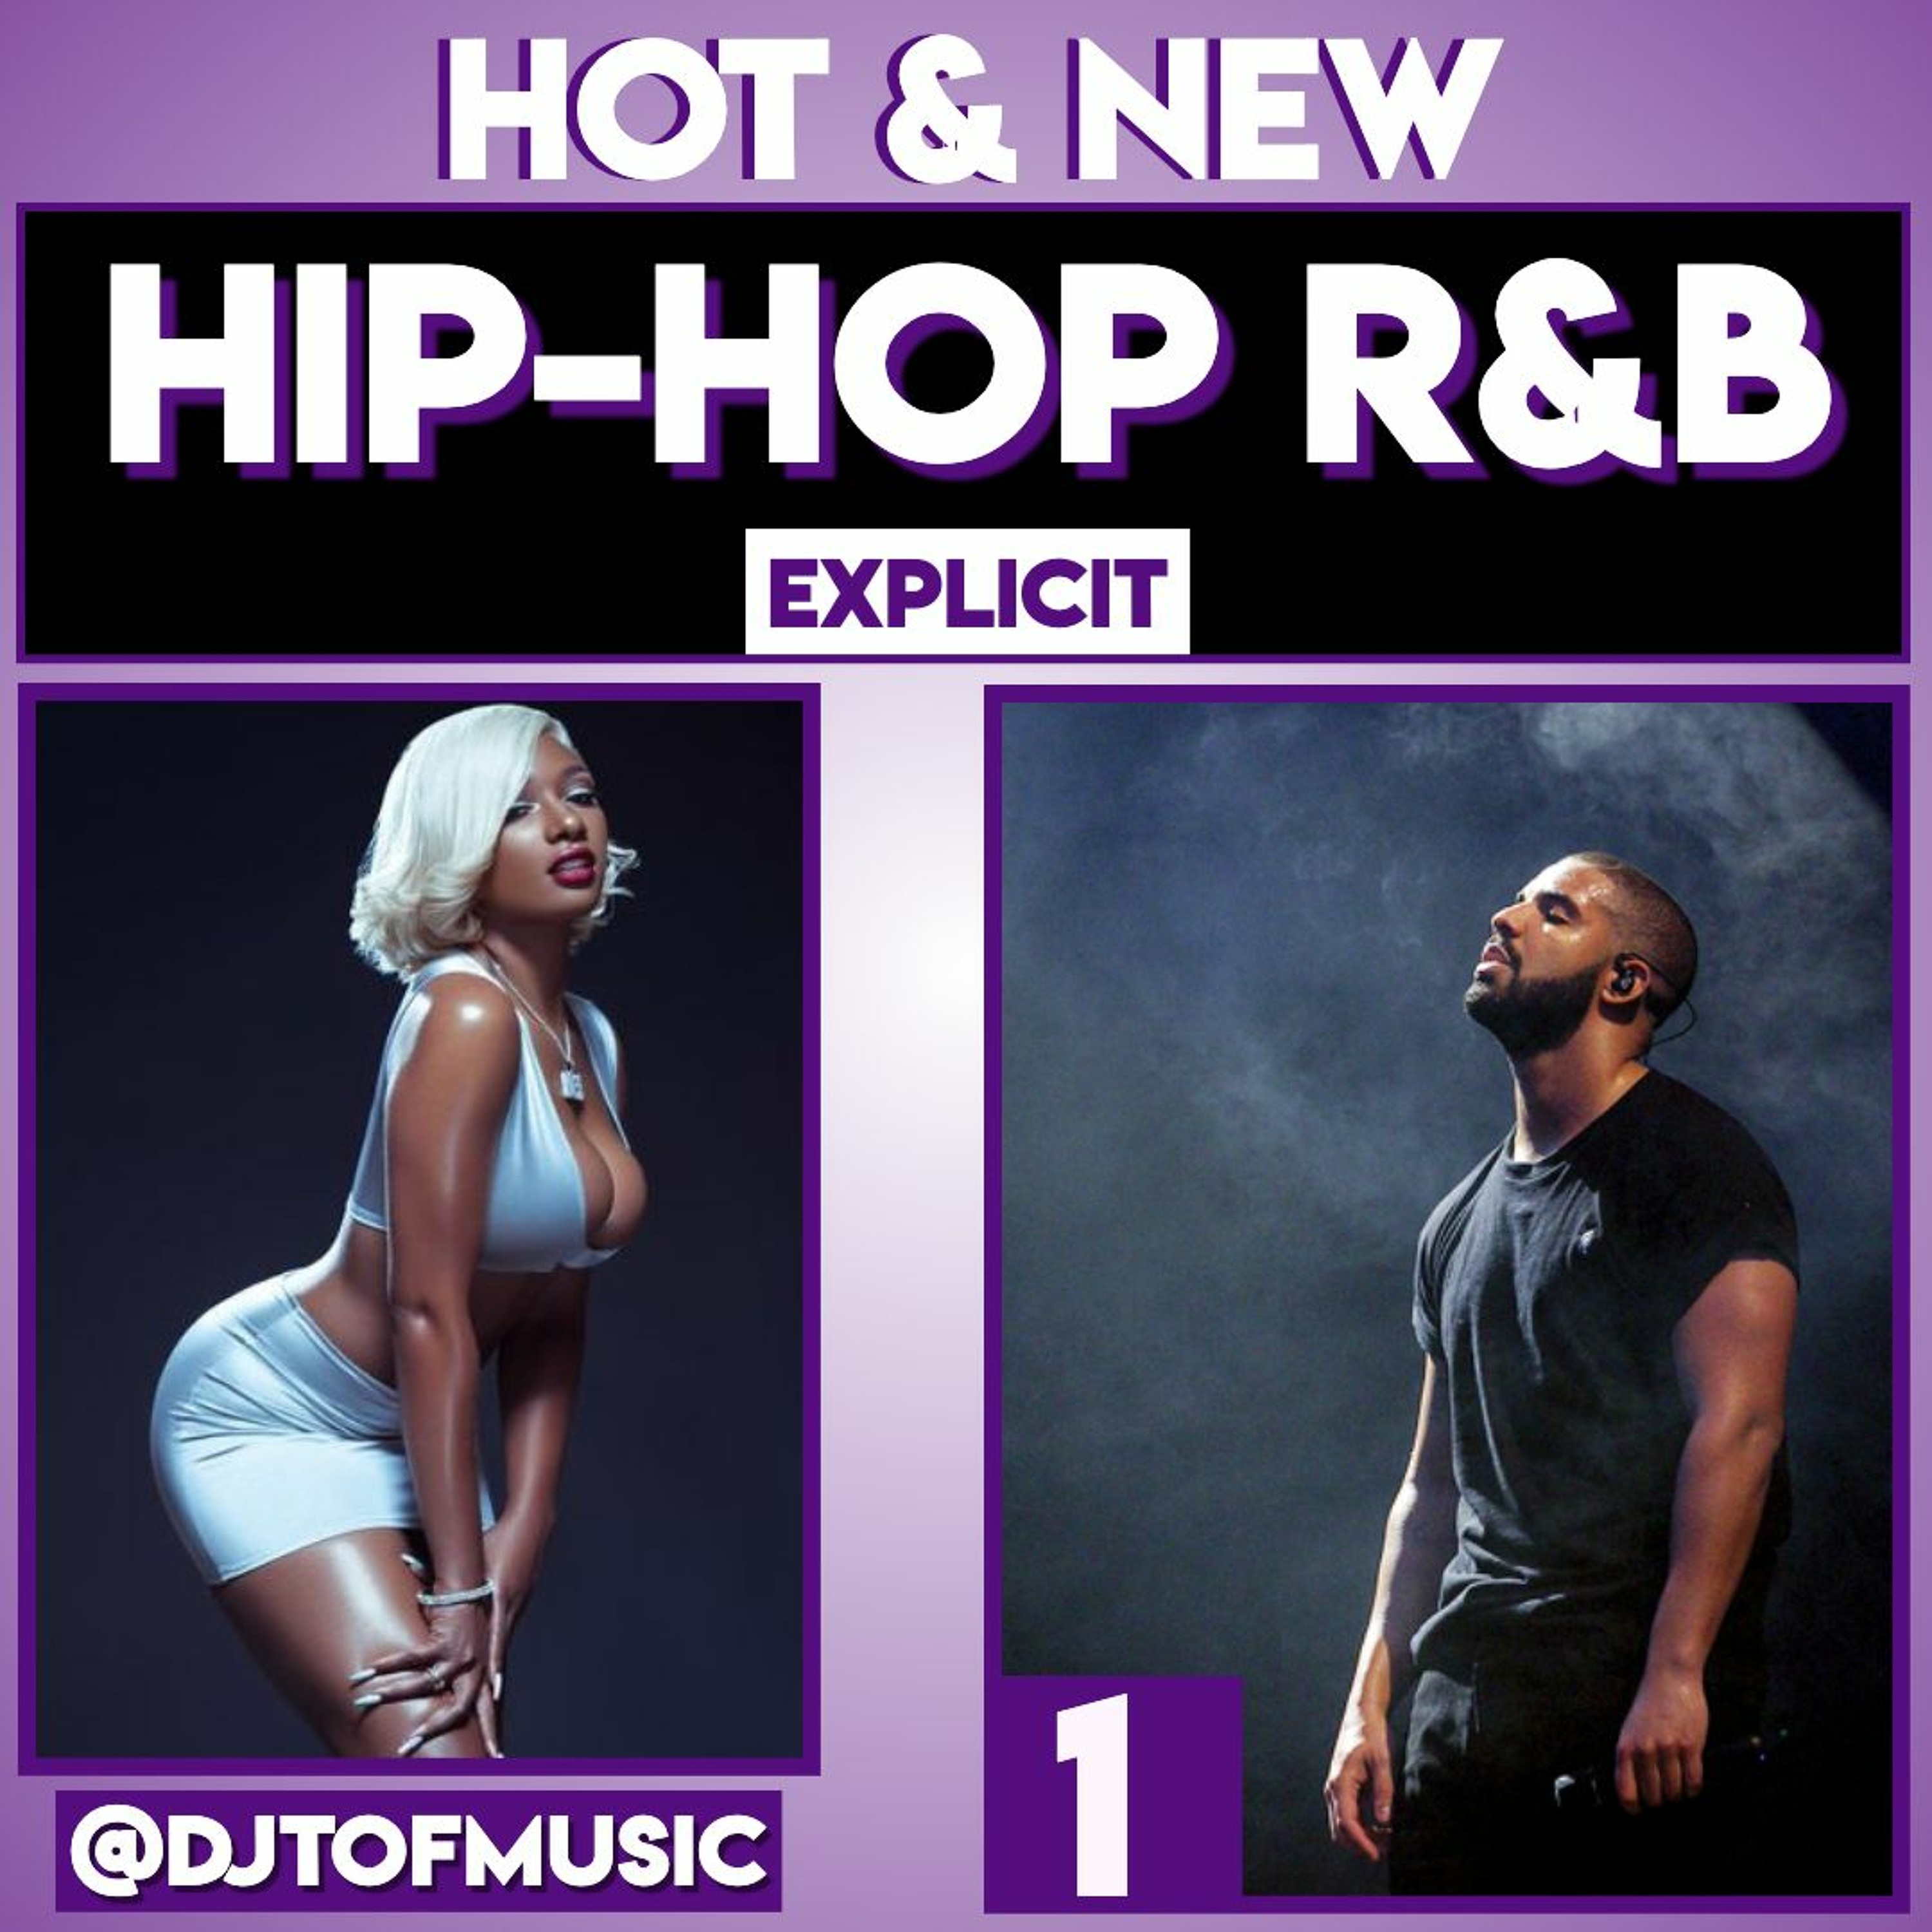 HOT & NEW : HIP HOP R&B 1 [EXPLICIT/DIRTY]